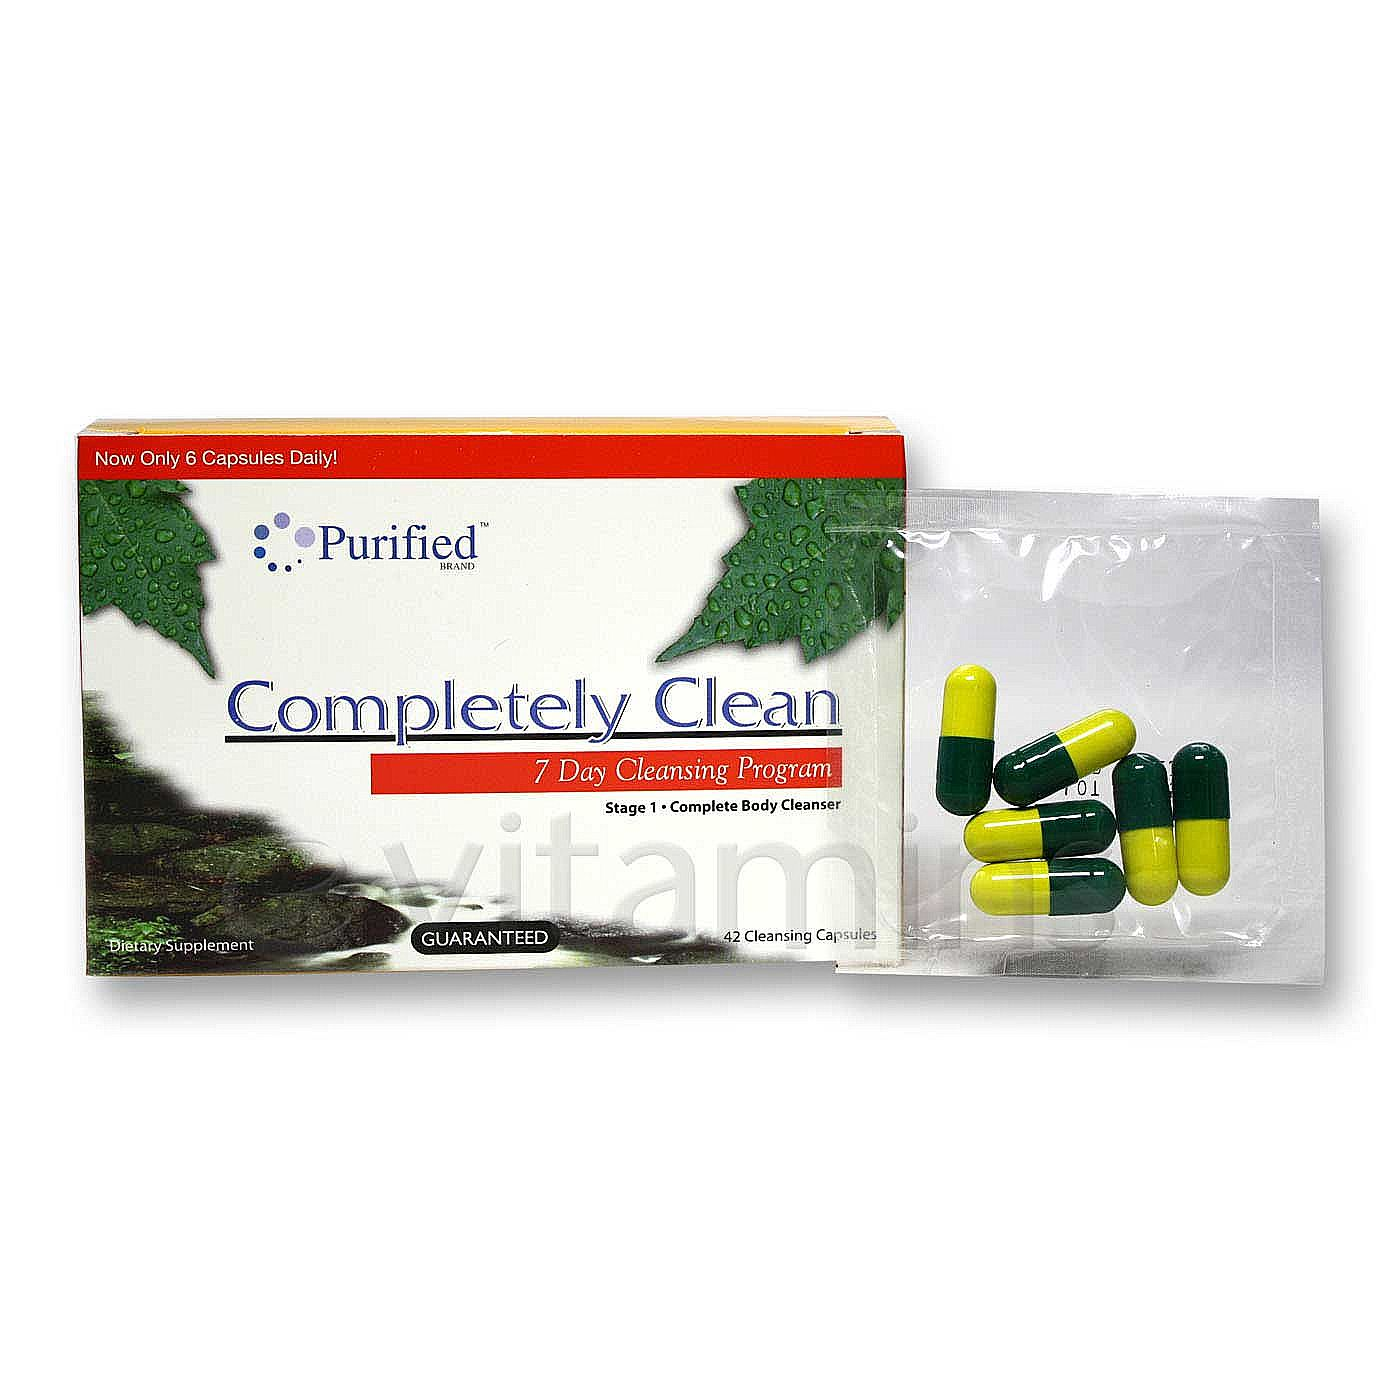 eVitamins.com: Puriclean Completely Clean - 7 Day Cleansing Program